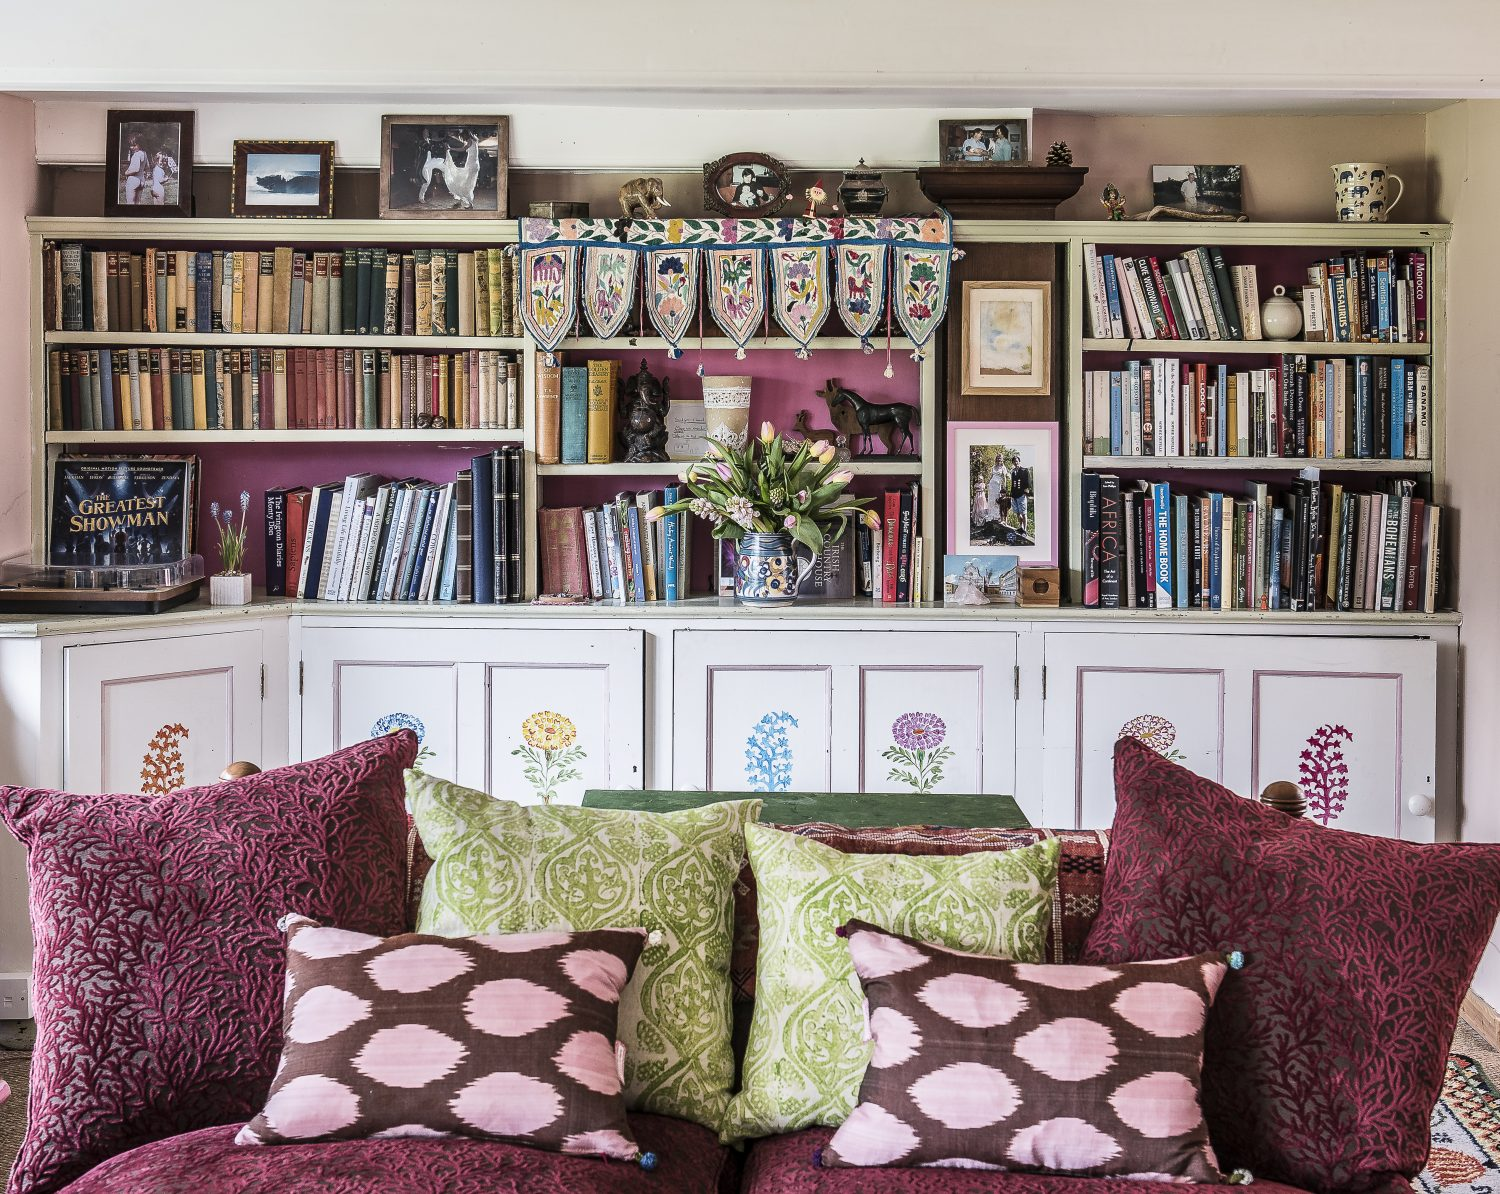 Molly's fabrics on cushions in the sitting room. She painted the flowers on the cupboard doors